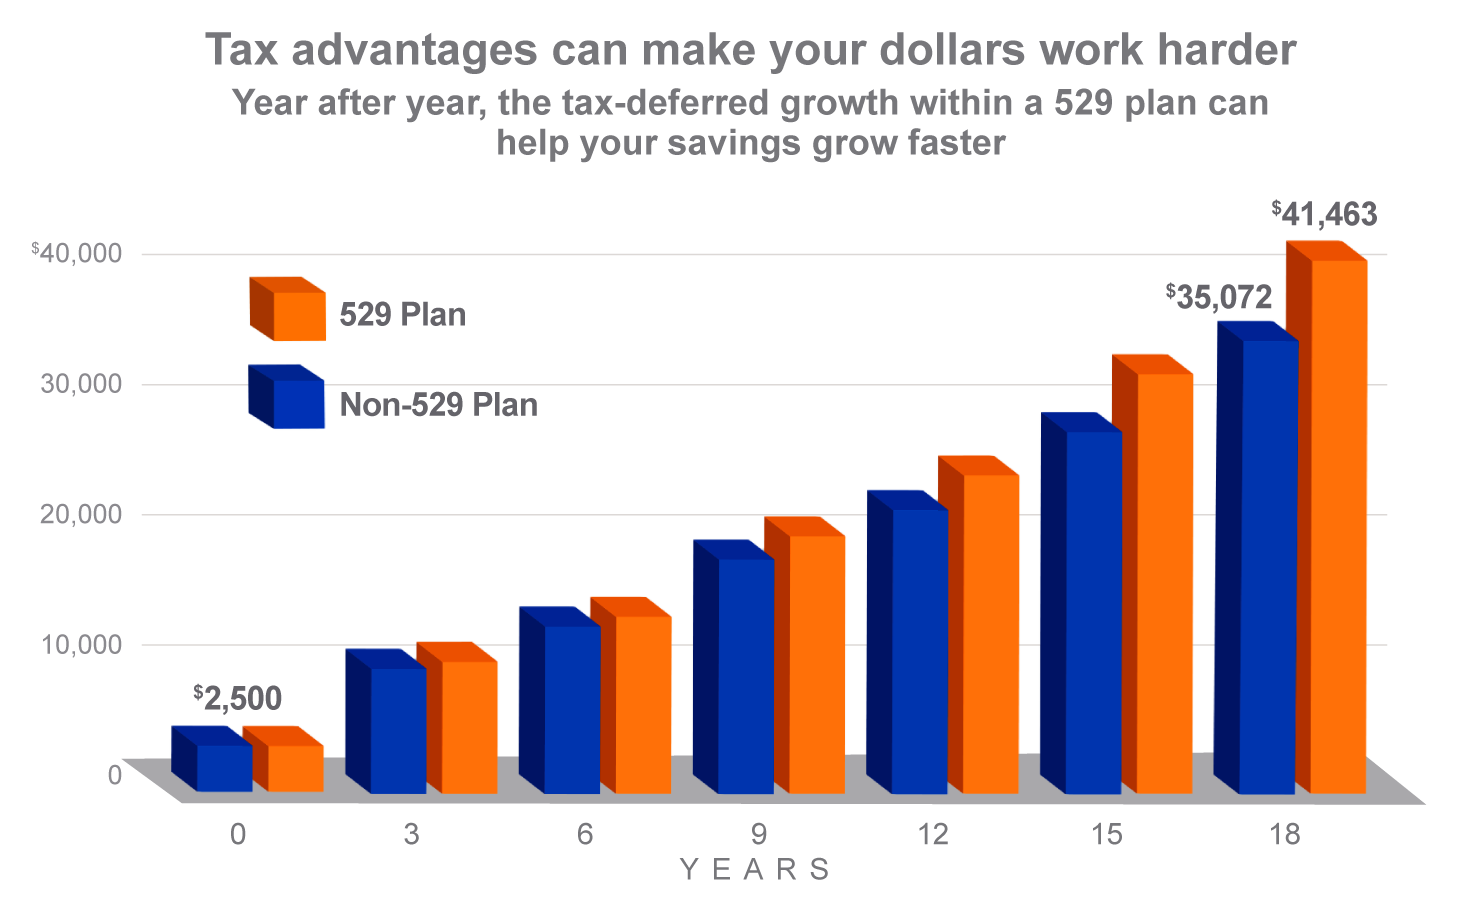 Tax advantages can make your dollars work harder. Year after year, the tax-deferred growth within a 529 plan can help your savings grow faster. The graph shows an initial investment of $2,500 into a 529 plan and a non-529 plan. After 18 years, the 529 plan has $41,463 in the account and the non-529 plan has $35,072.